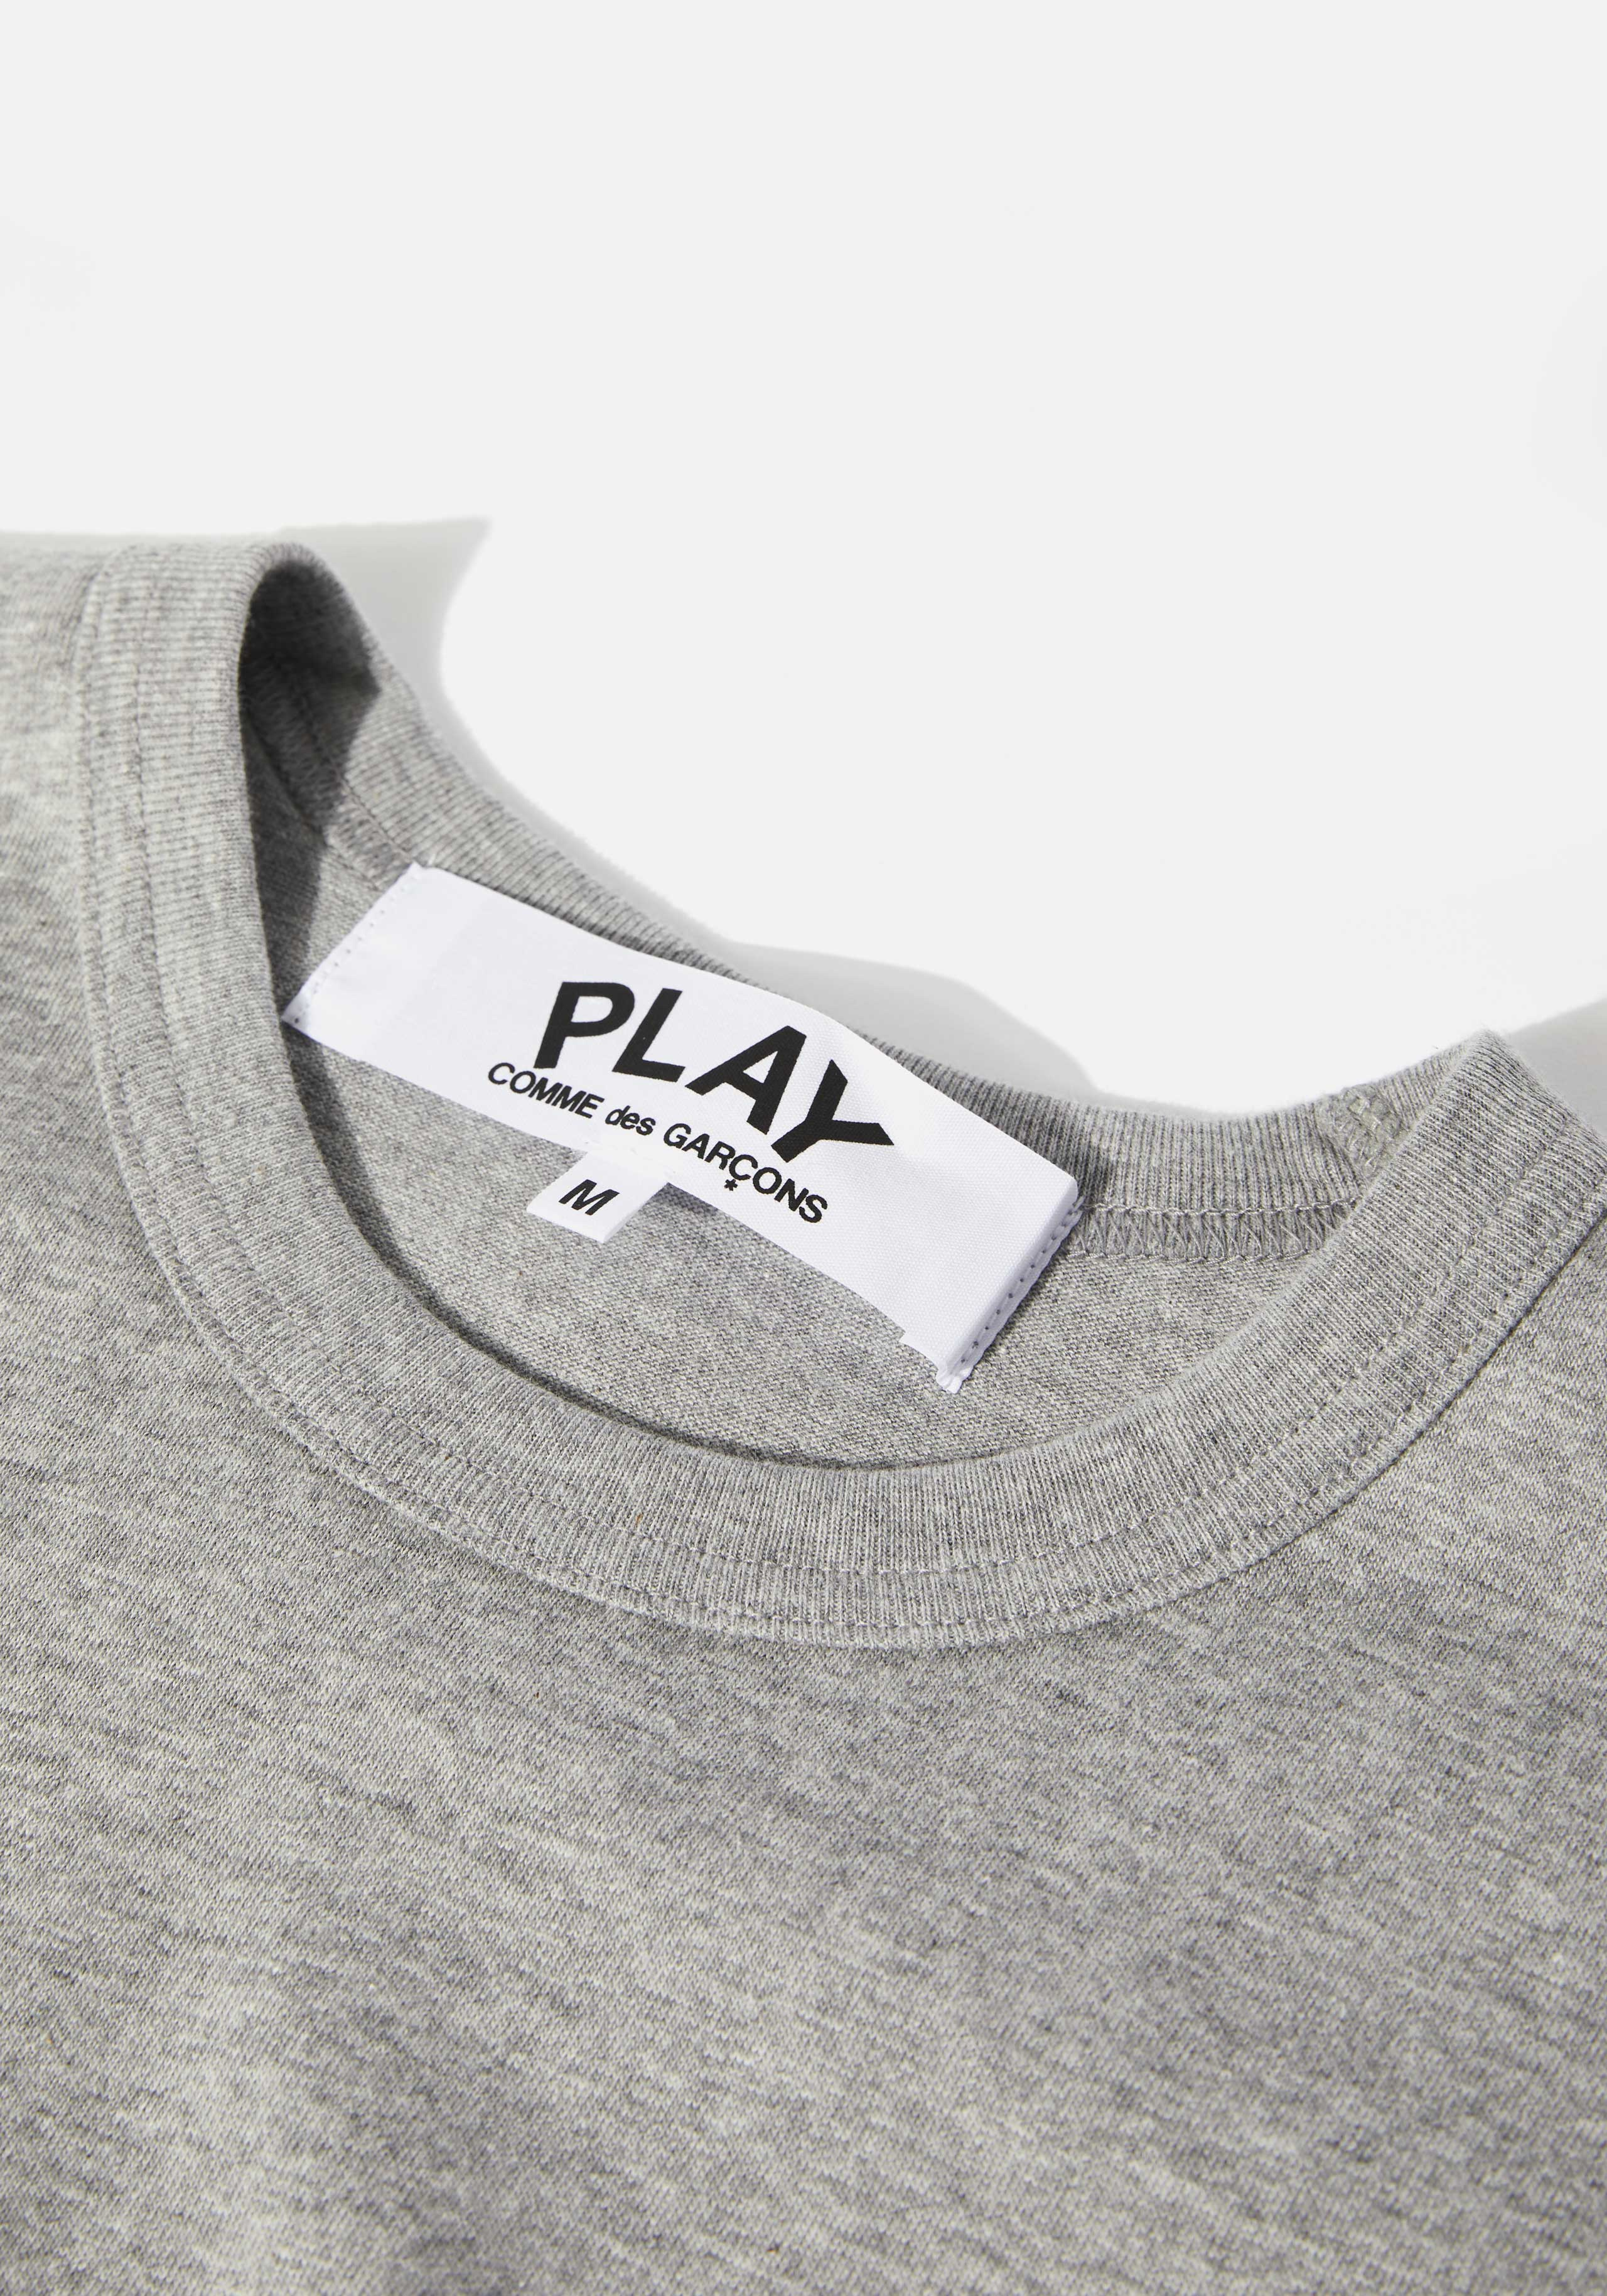 comme des garcons play black heart tee 3